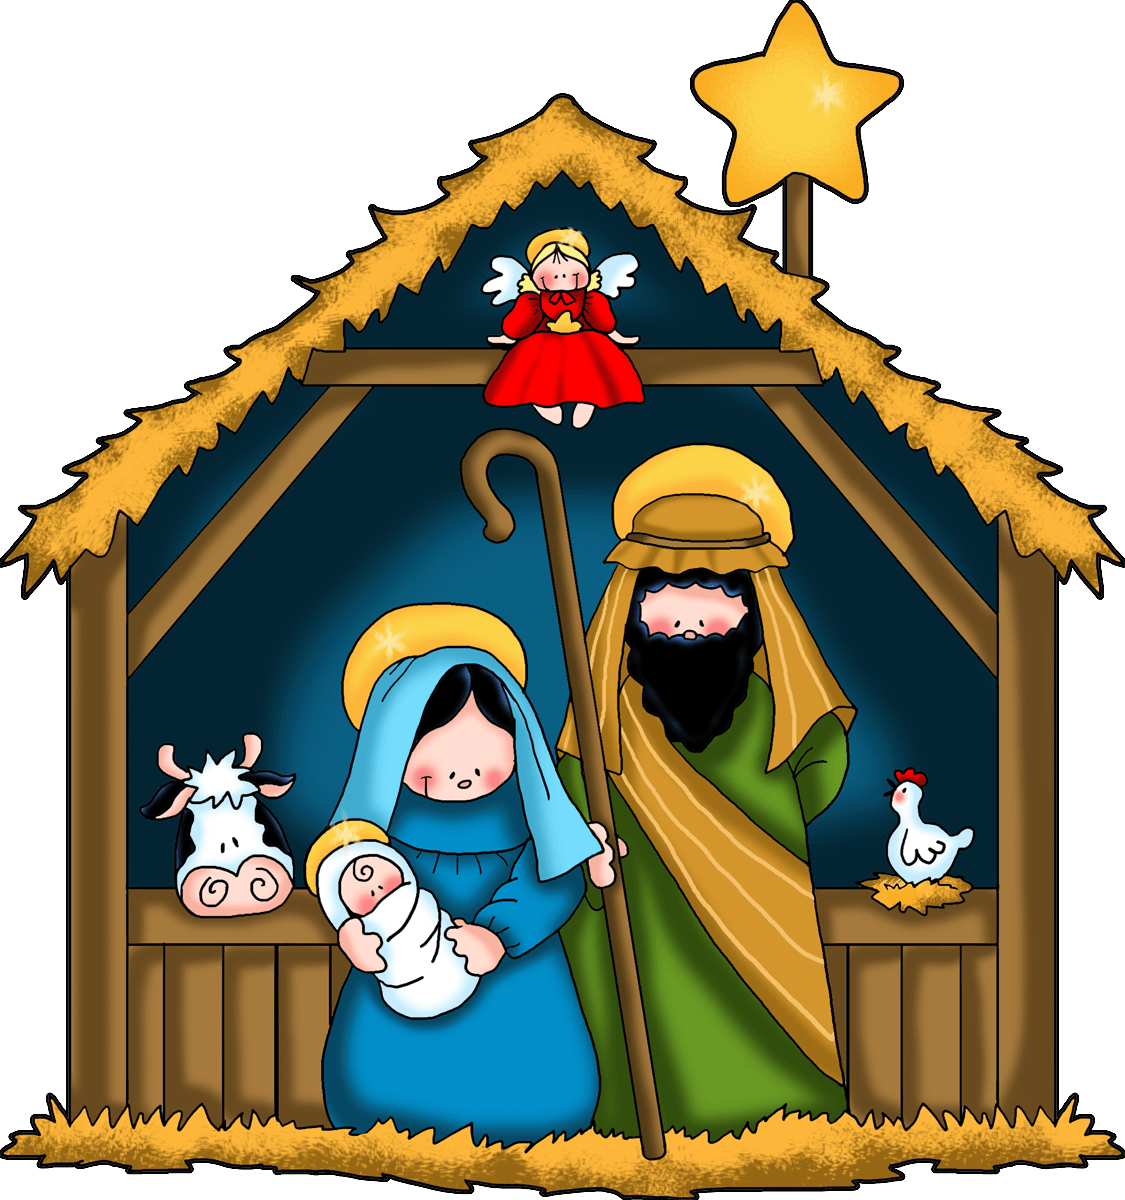 Free Lds Nativity Cliparts, Download Free Clip Art, Free Clip Art on.